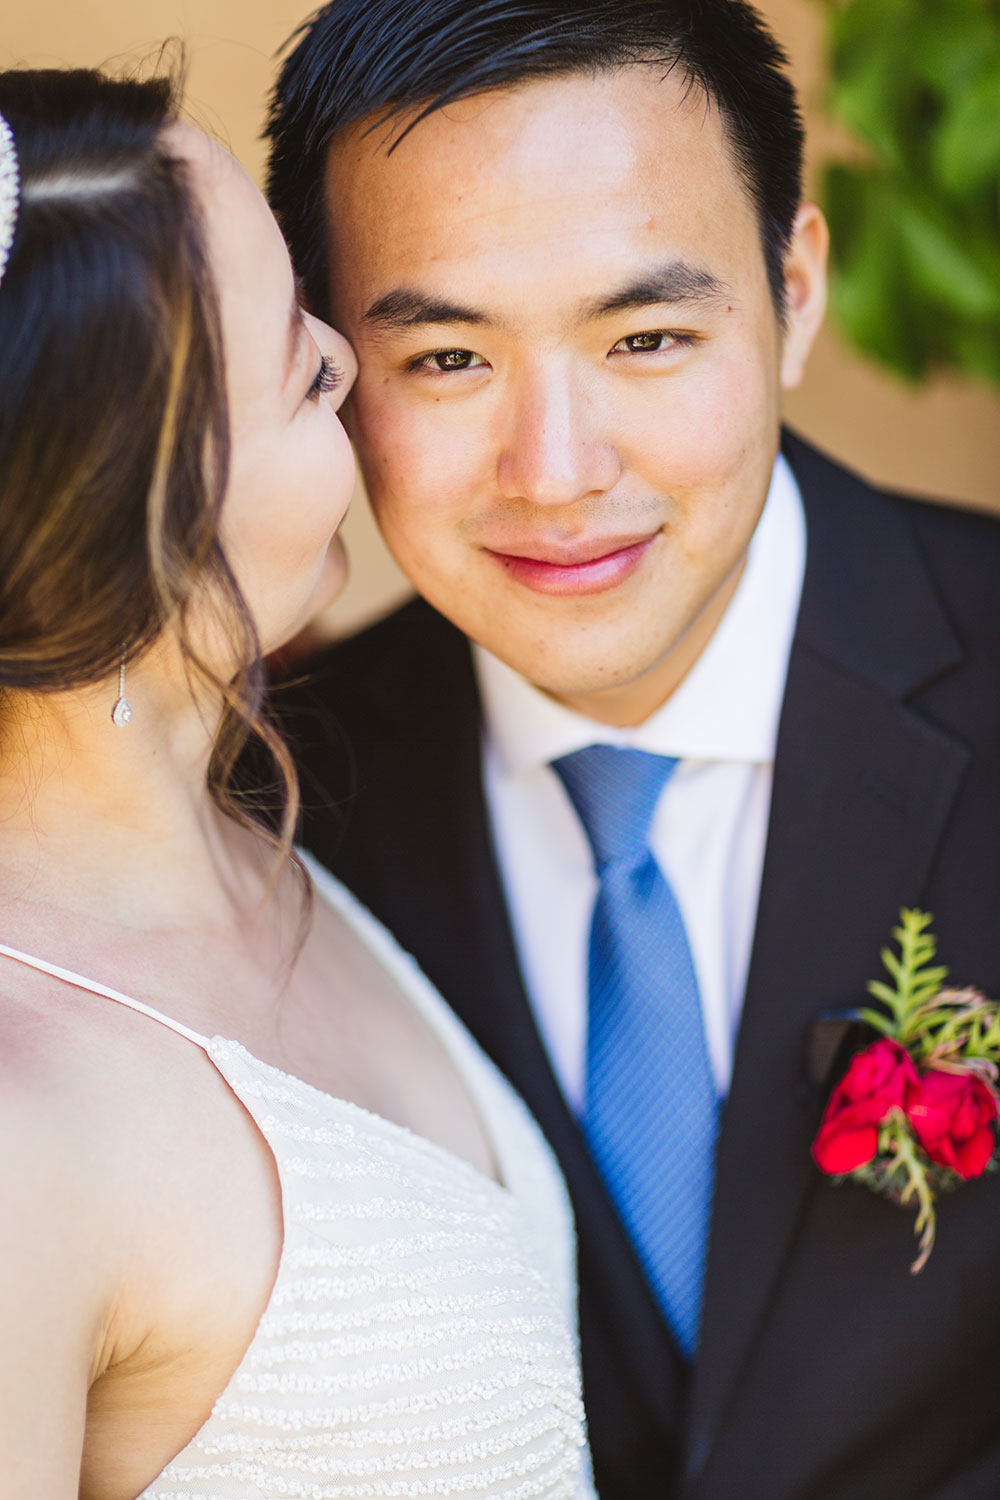 close up of groom with focus on groom